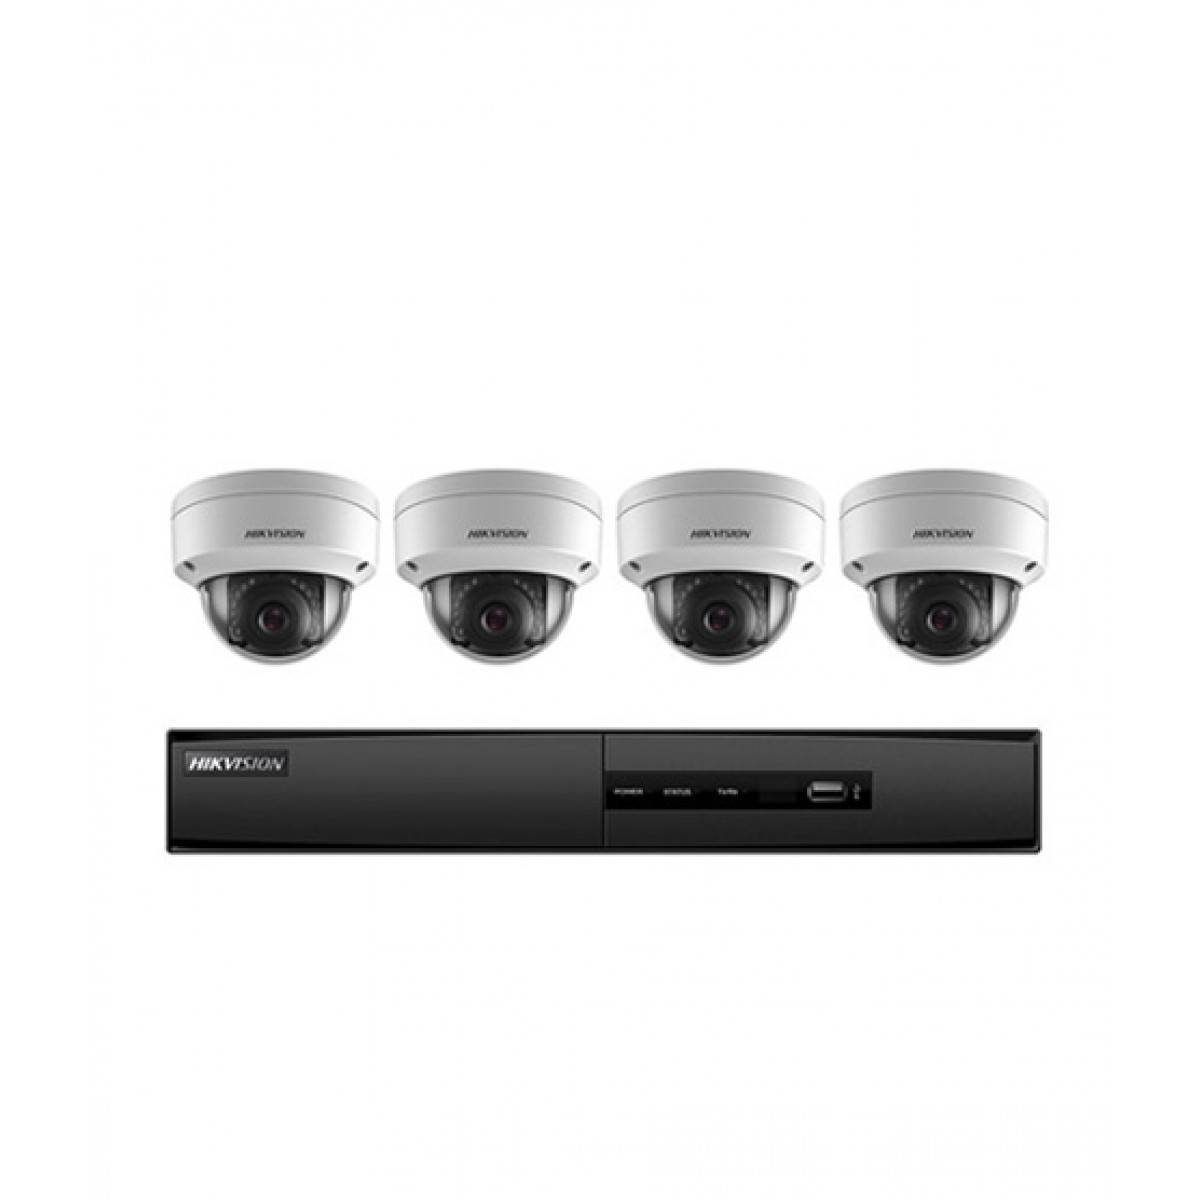 Hikvision Super Value 4 Channel 5MP NVR 1TB HDD & 4 2MP Dome Cameras  (I7604N1TA)